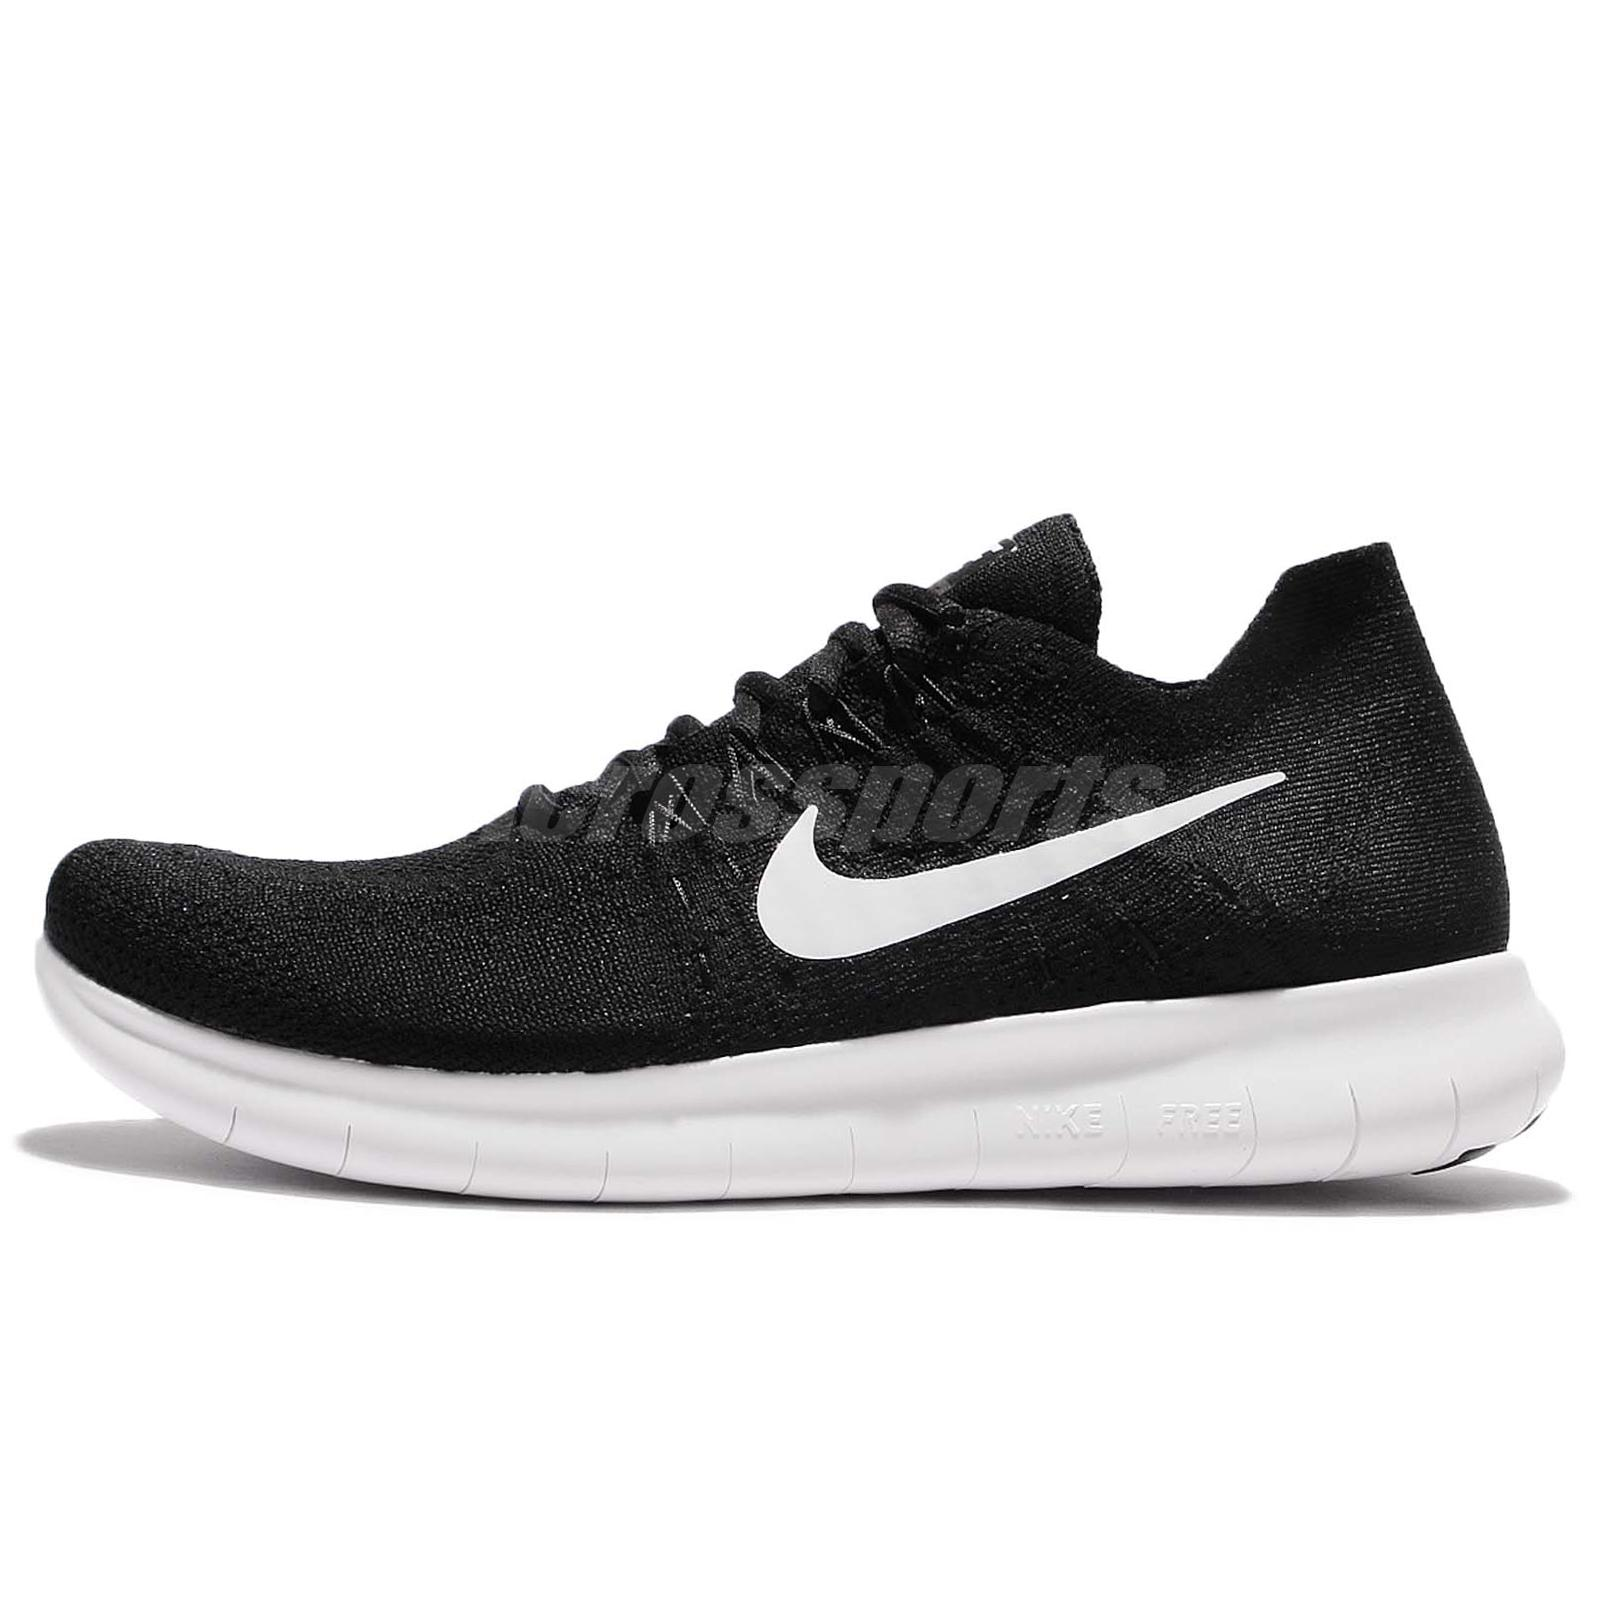 e50afc8cc8eb Nike Free RN Flyknit 2017 Run Black White Men Running Shoes 880843 ...